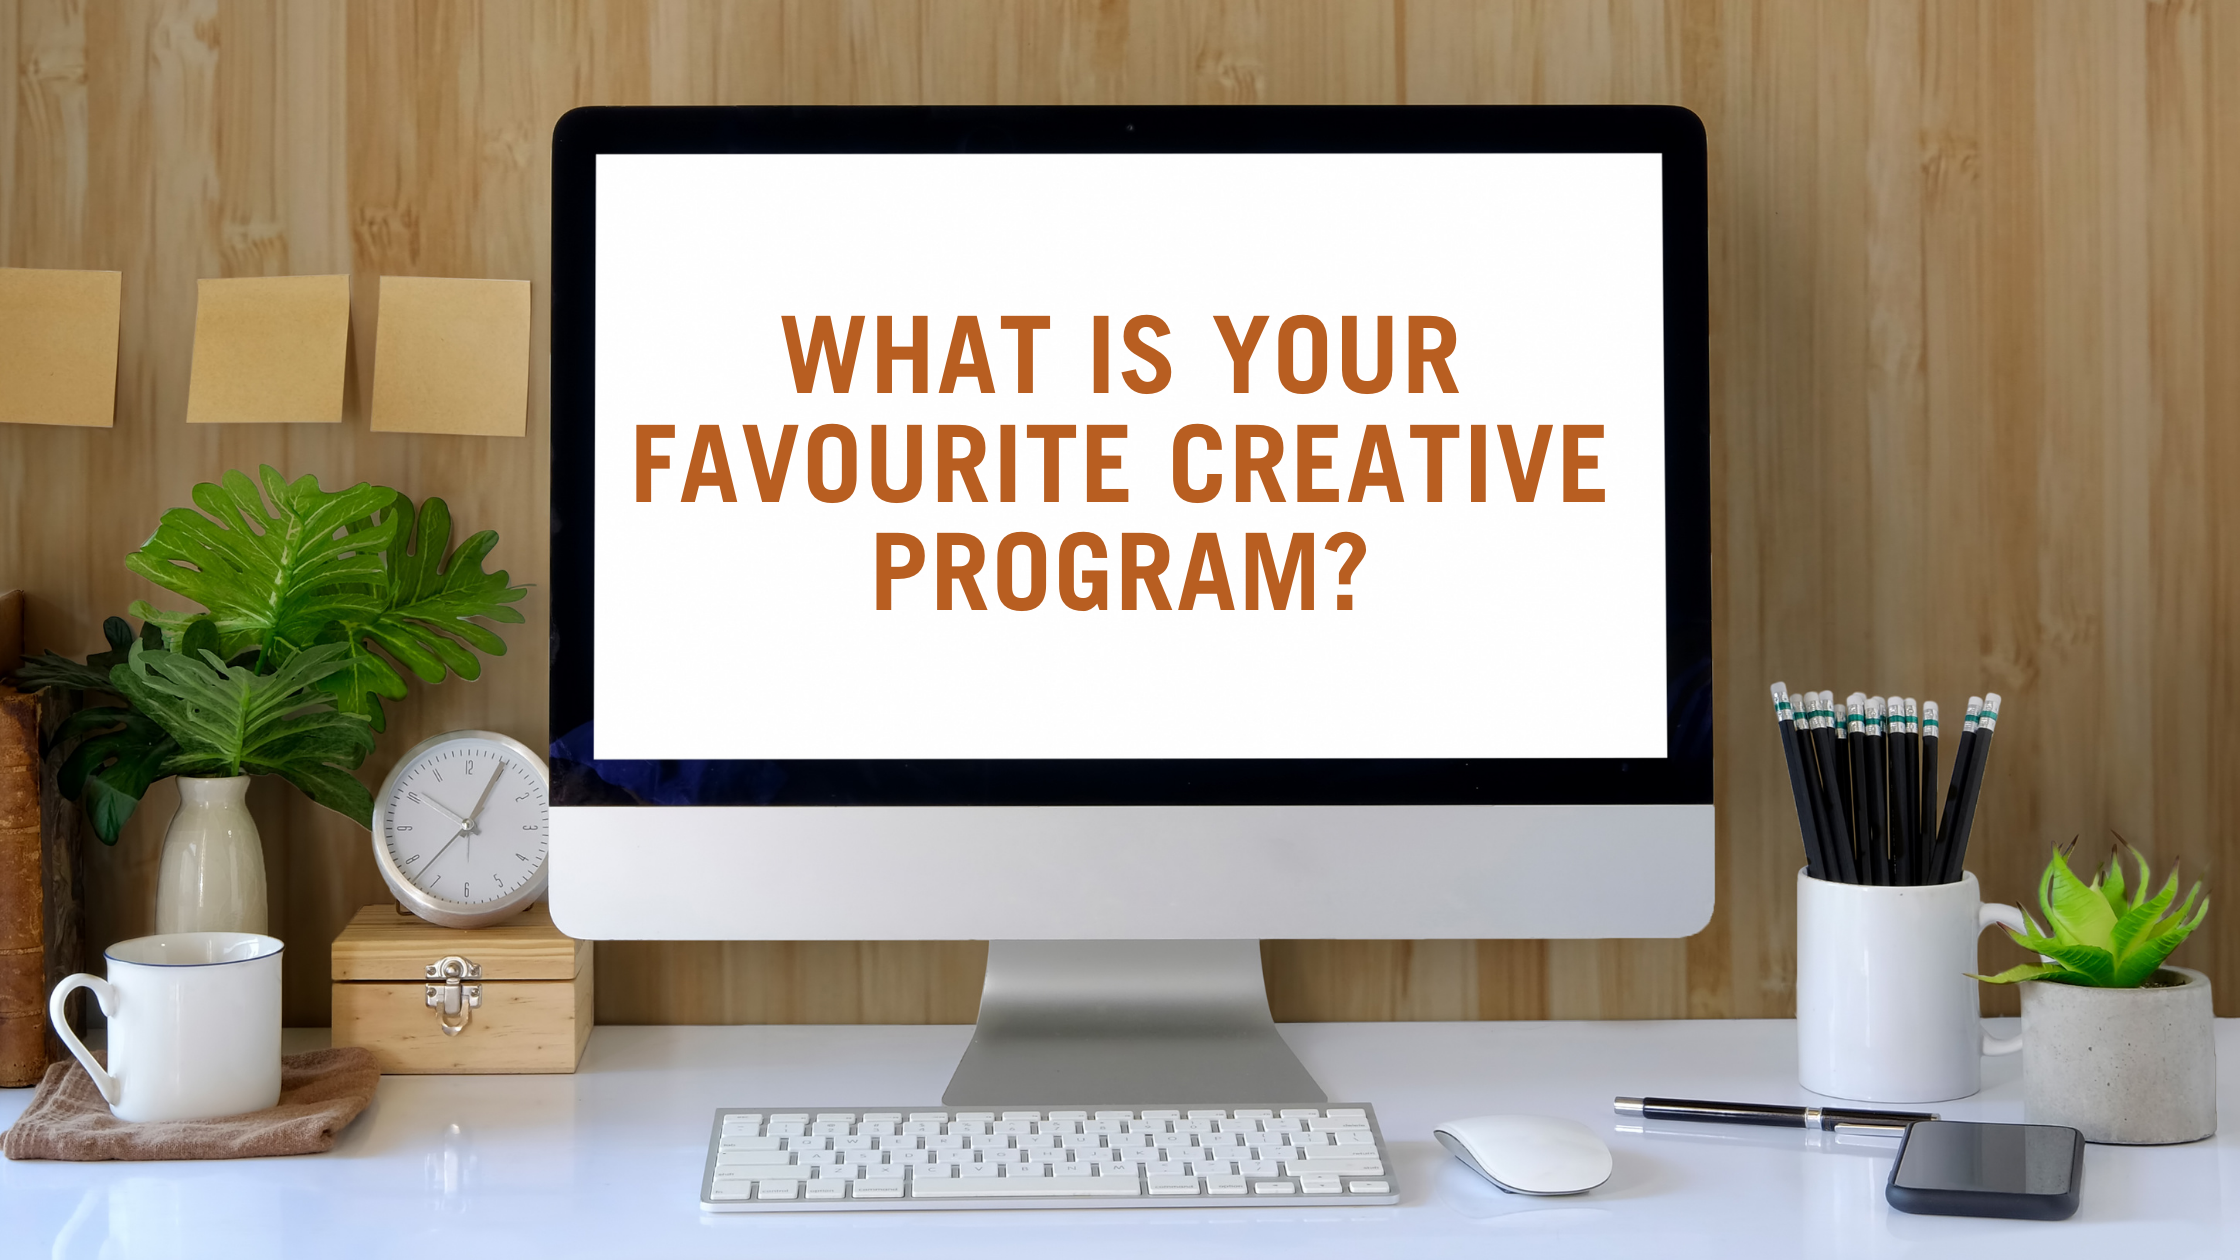 What is your favourite creative program?